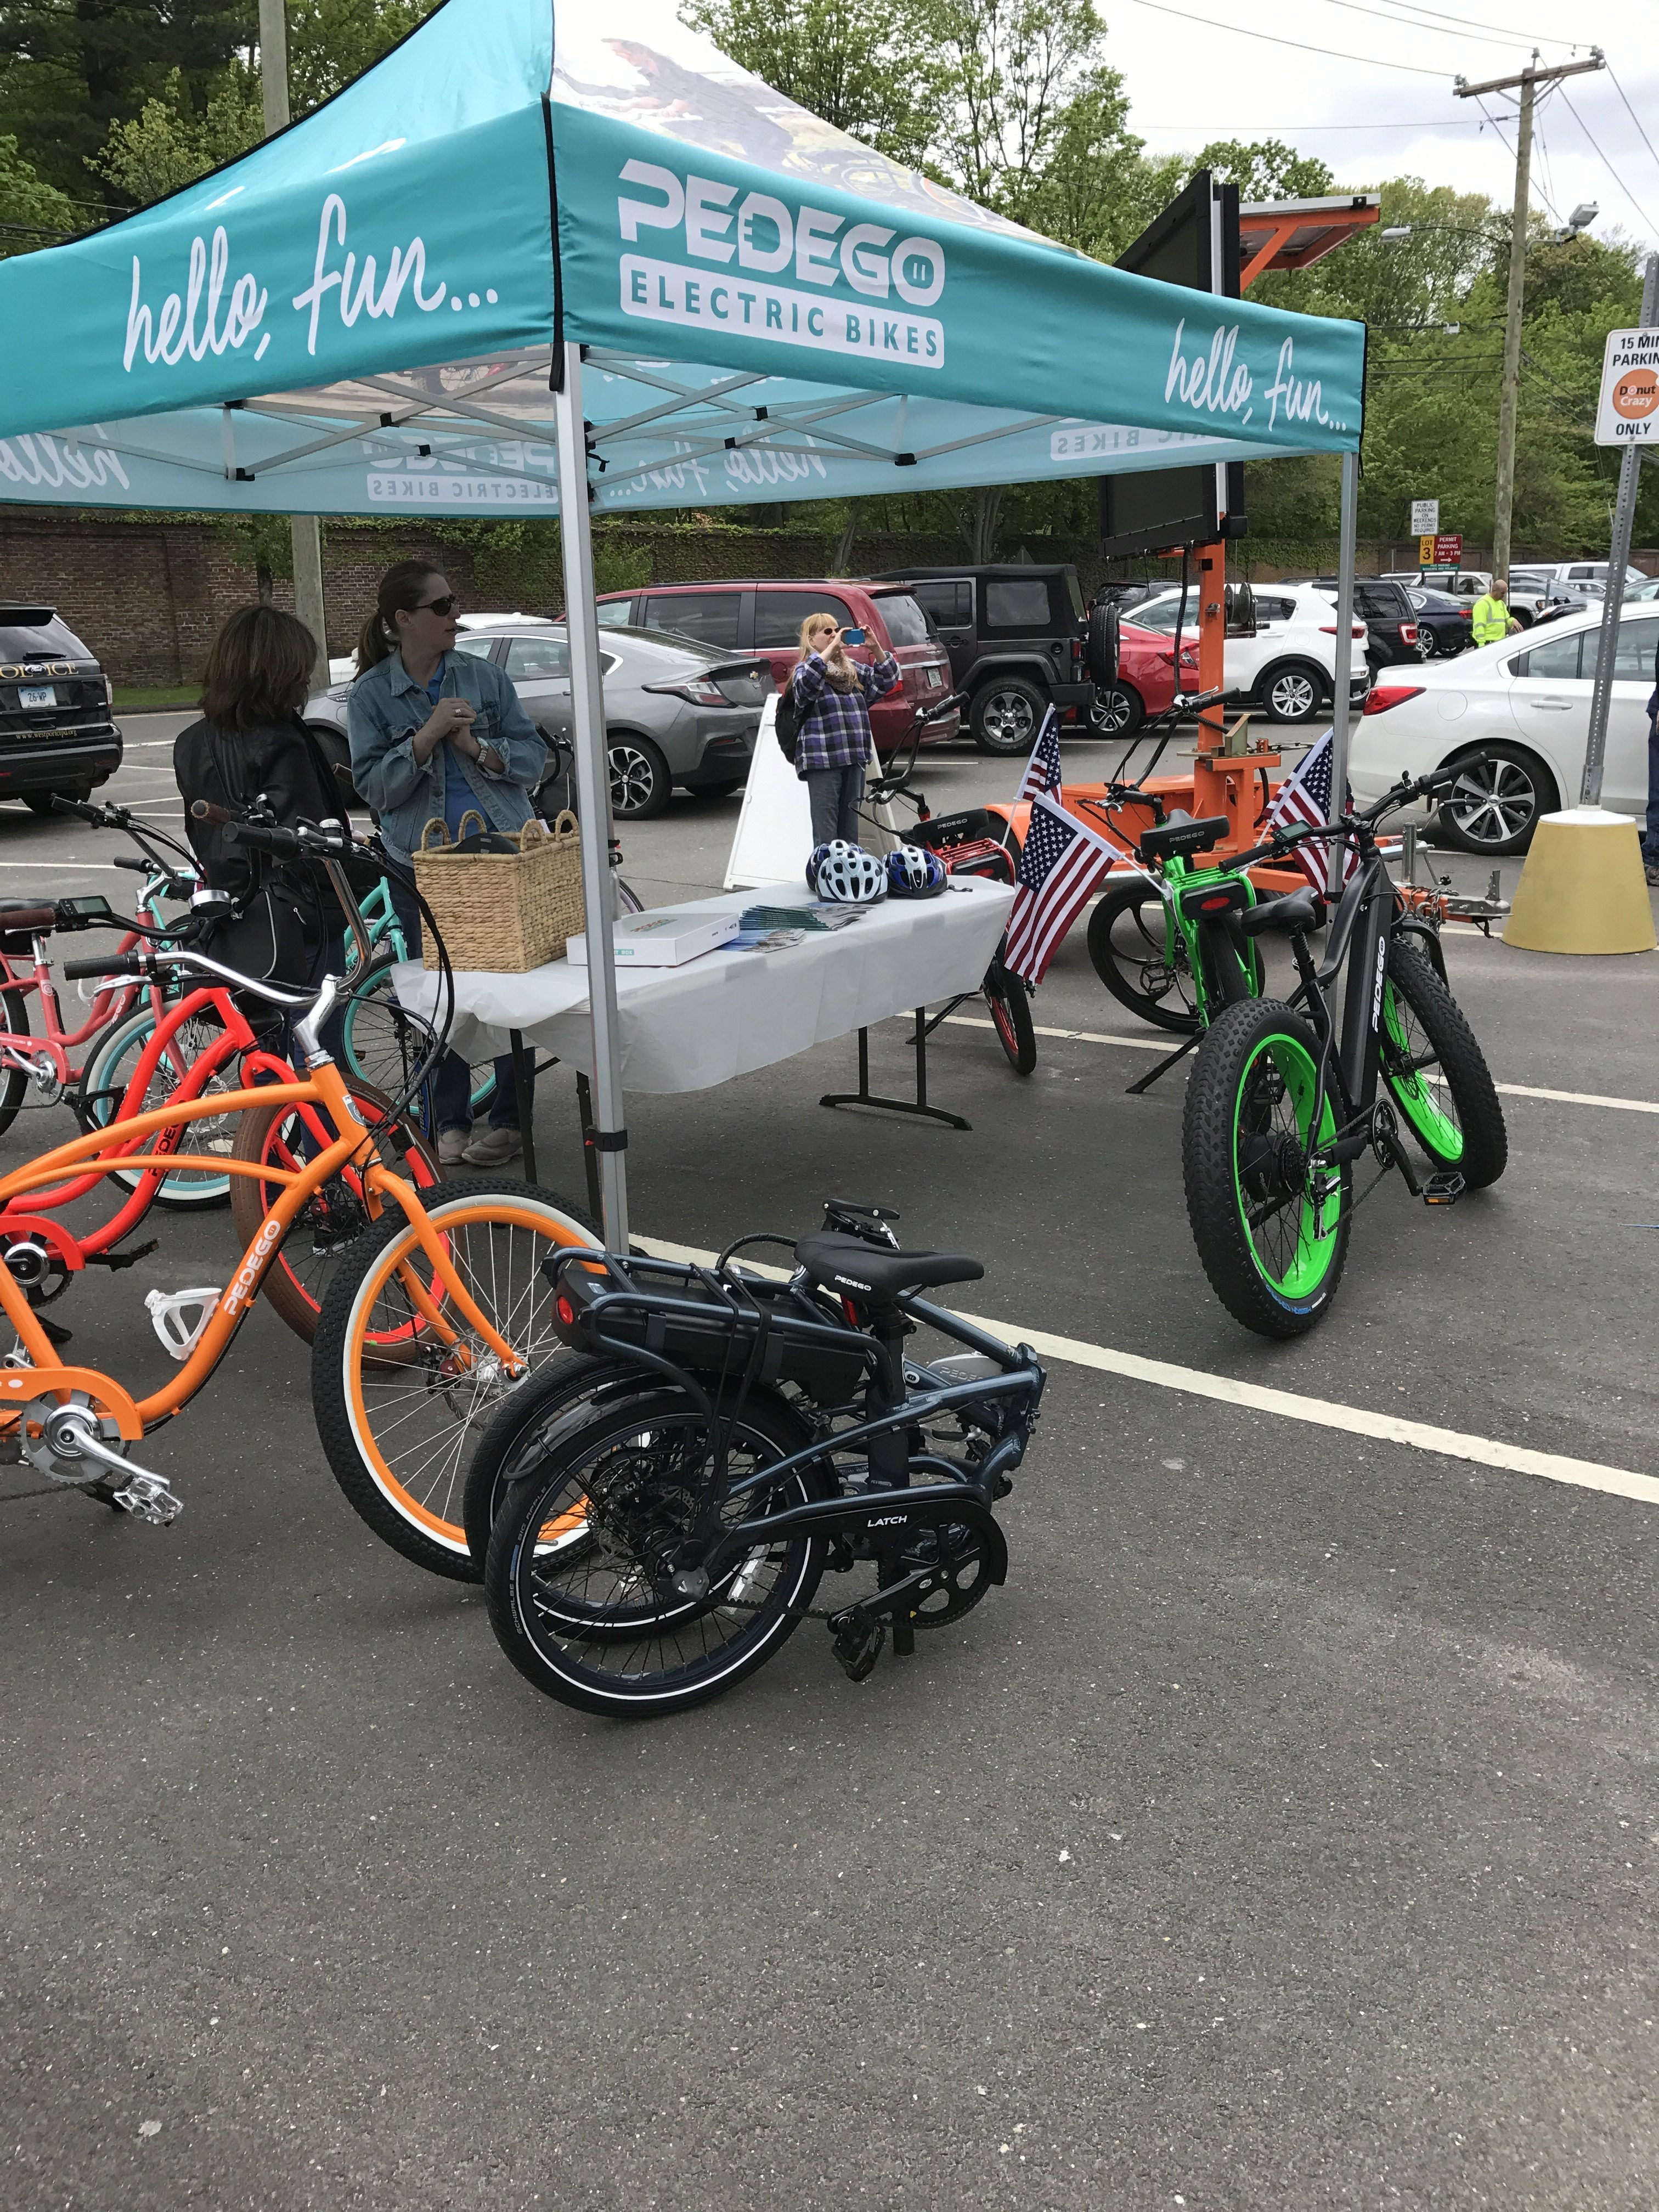 Pedego Electric Bikes, part of 2017 EV Road Rally